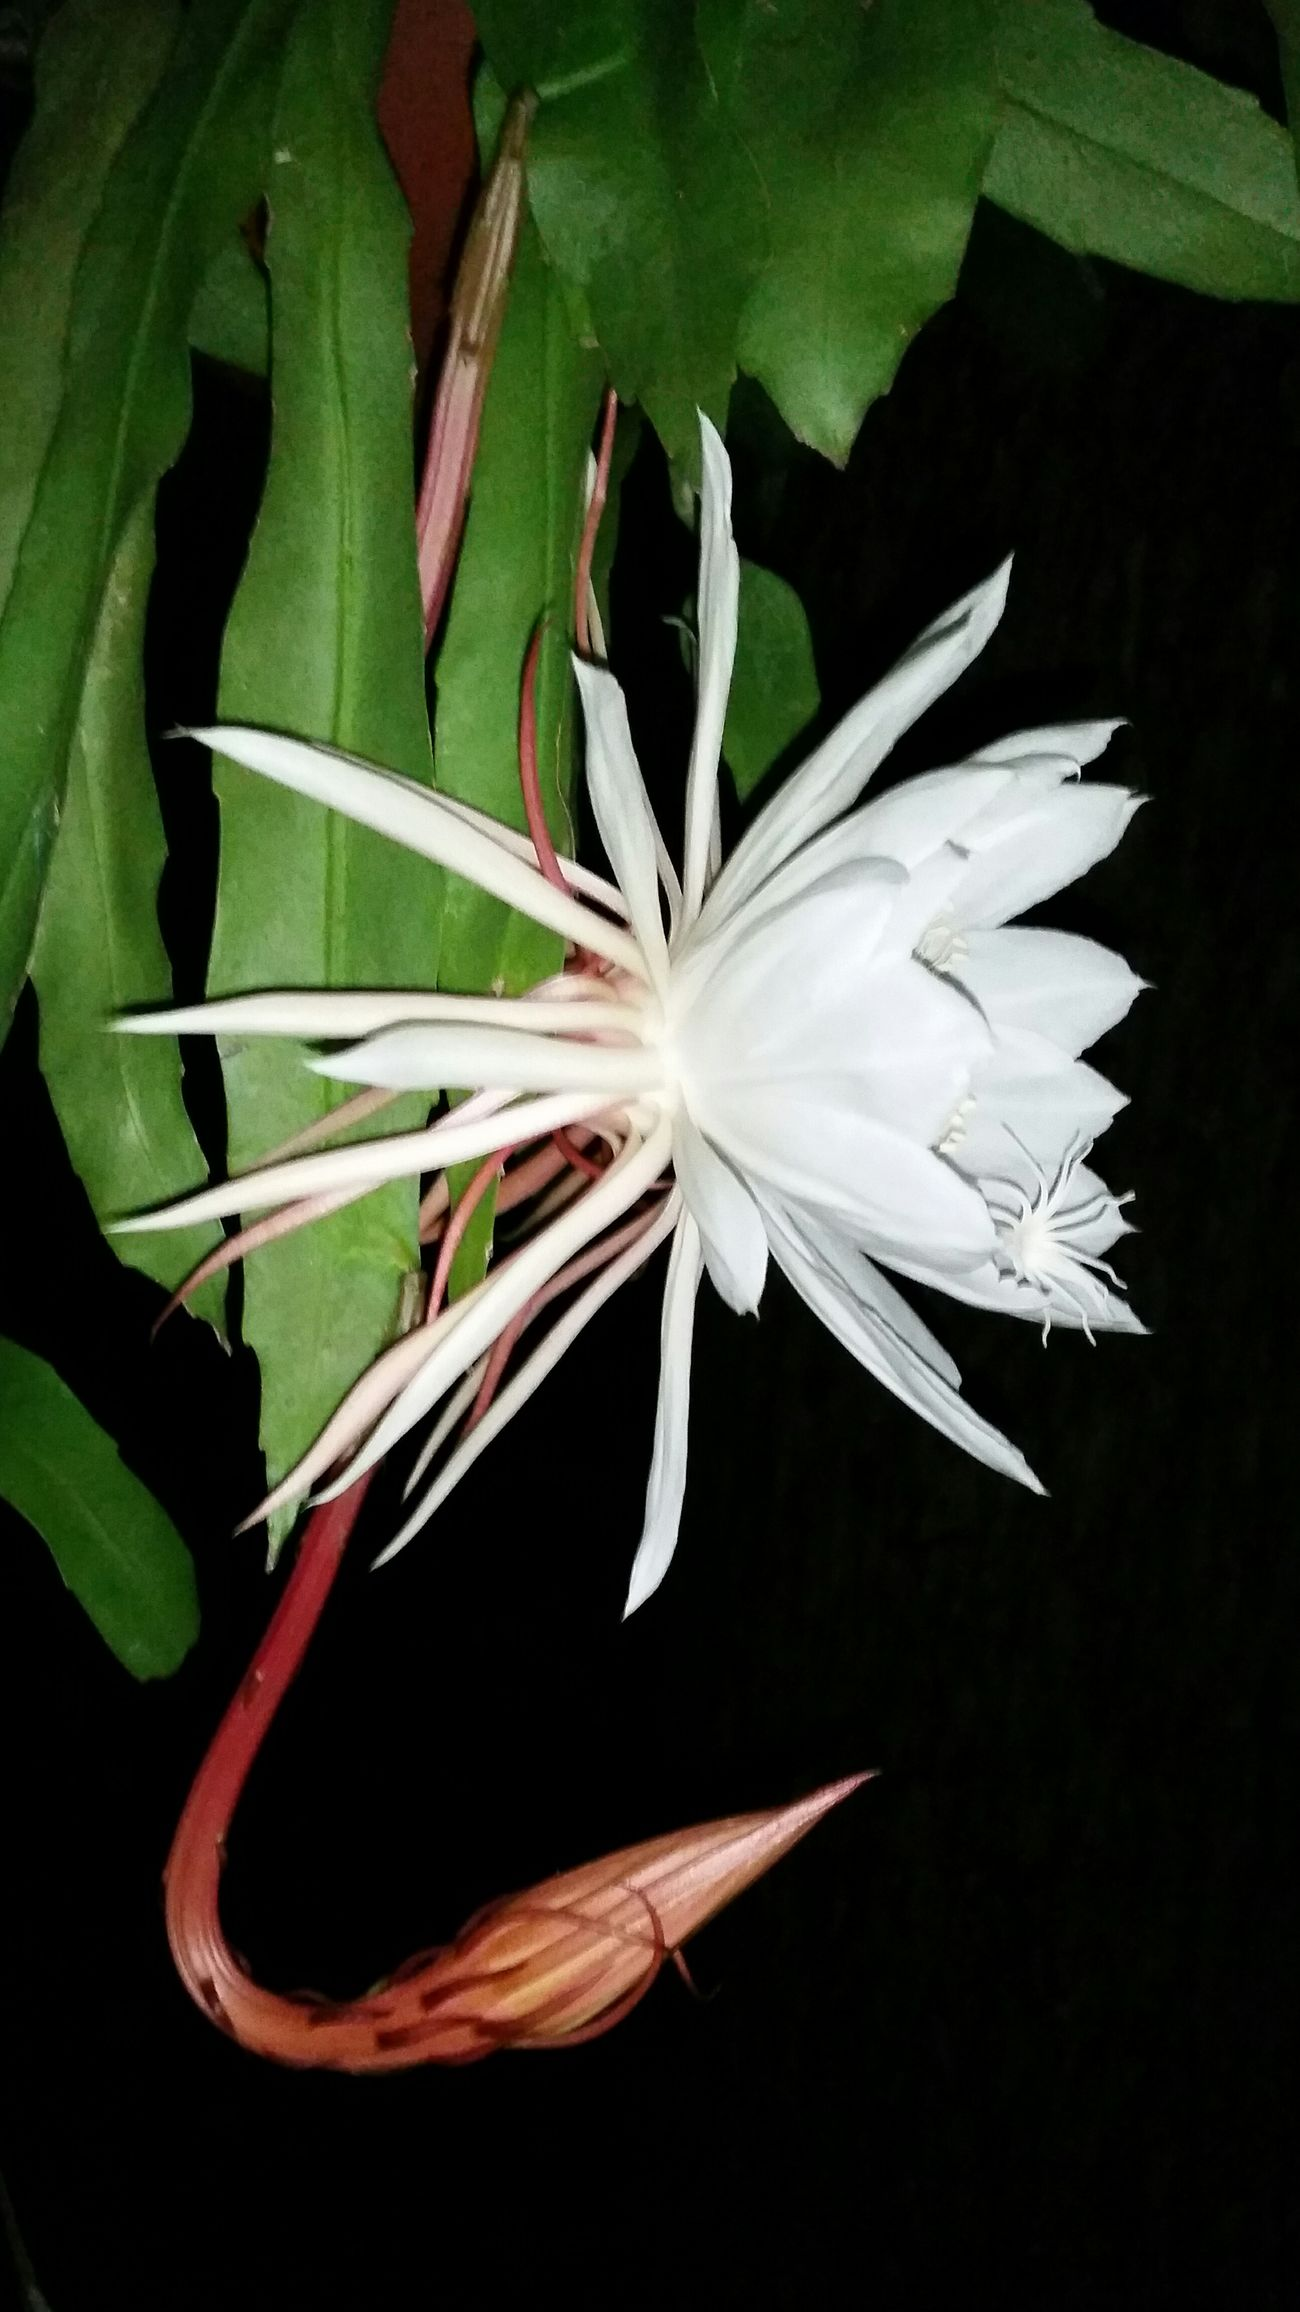 Leaf Plant Vertical Green Color Close-up No People Nature Beauty In Nature Flower Head Outdoors Day Nightblooming Cereus ... Night Photography Makesmesmile Happy Enjoying Life Fragility Beauty In Nature